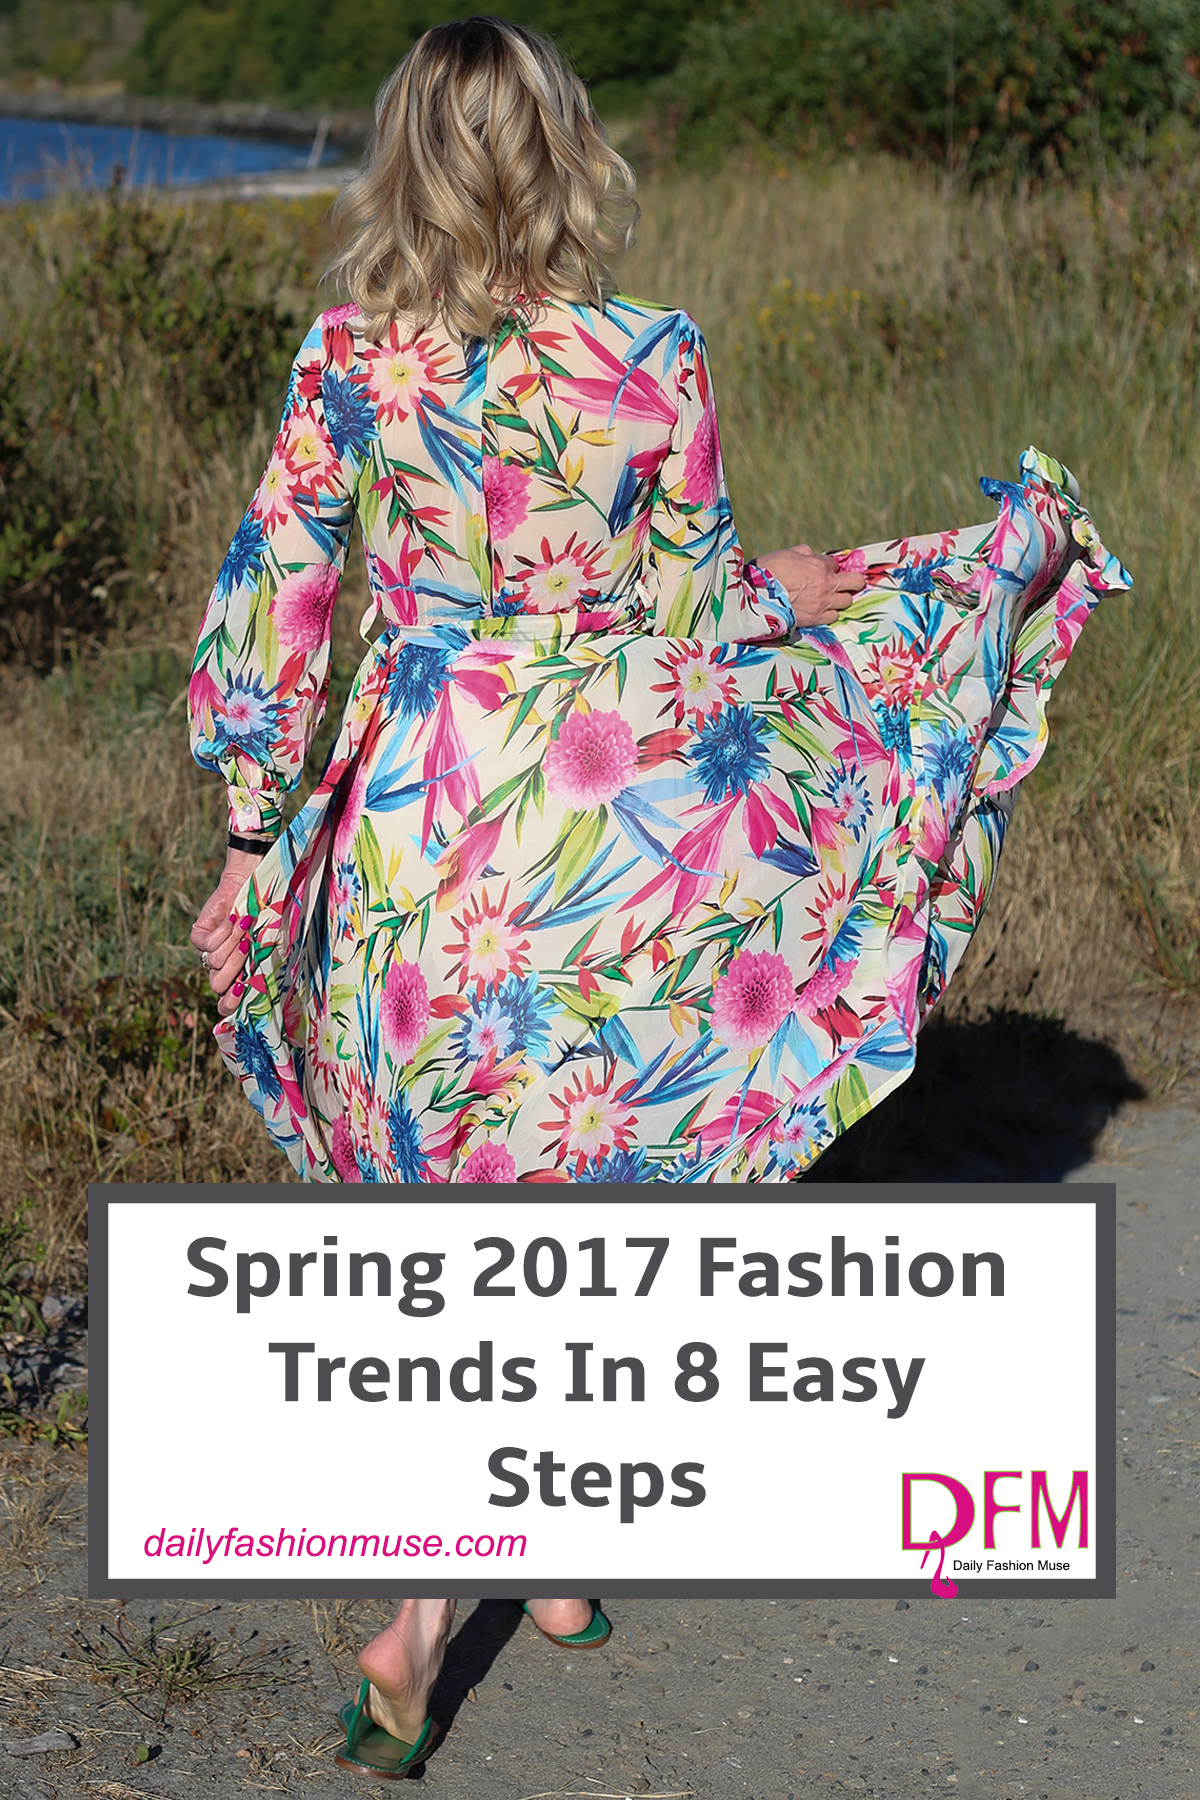 Do the spring 2017 fashion trends have you spinning out of control? Here are 8 easy steps that will keep you stylish and on trend without breaking the bank.